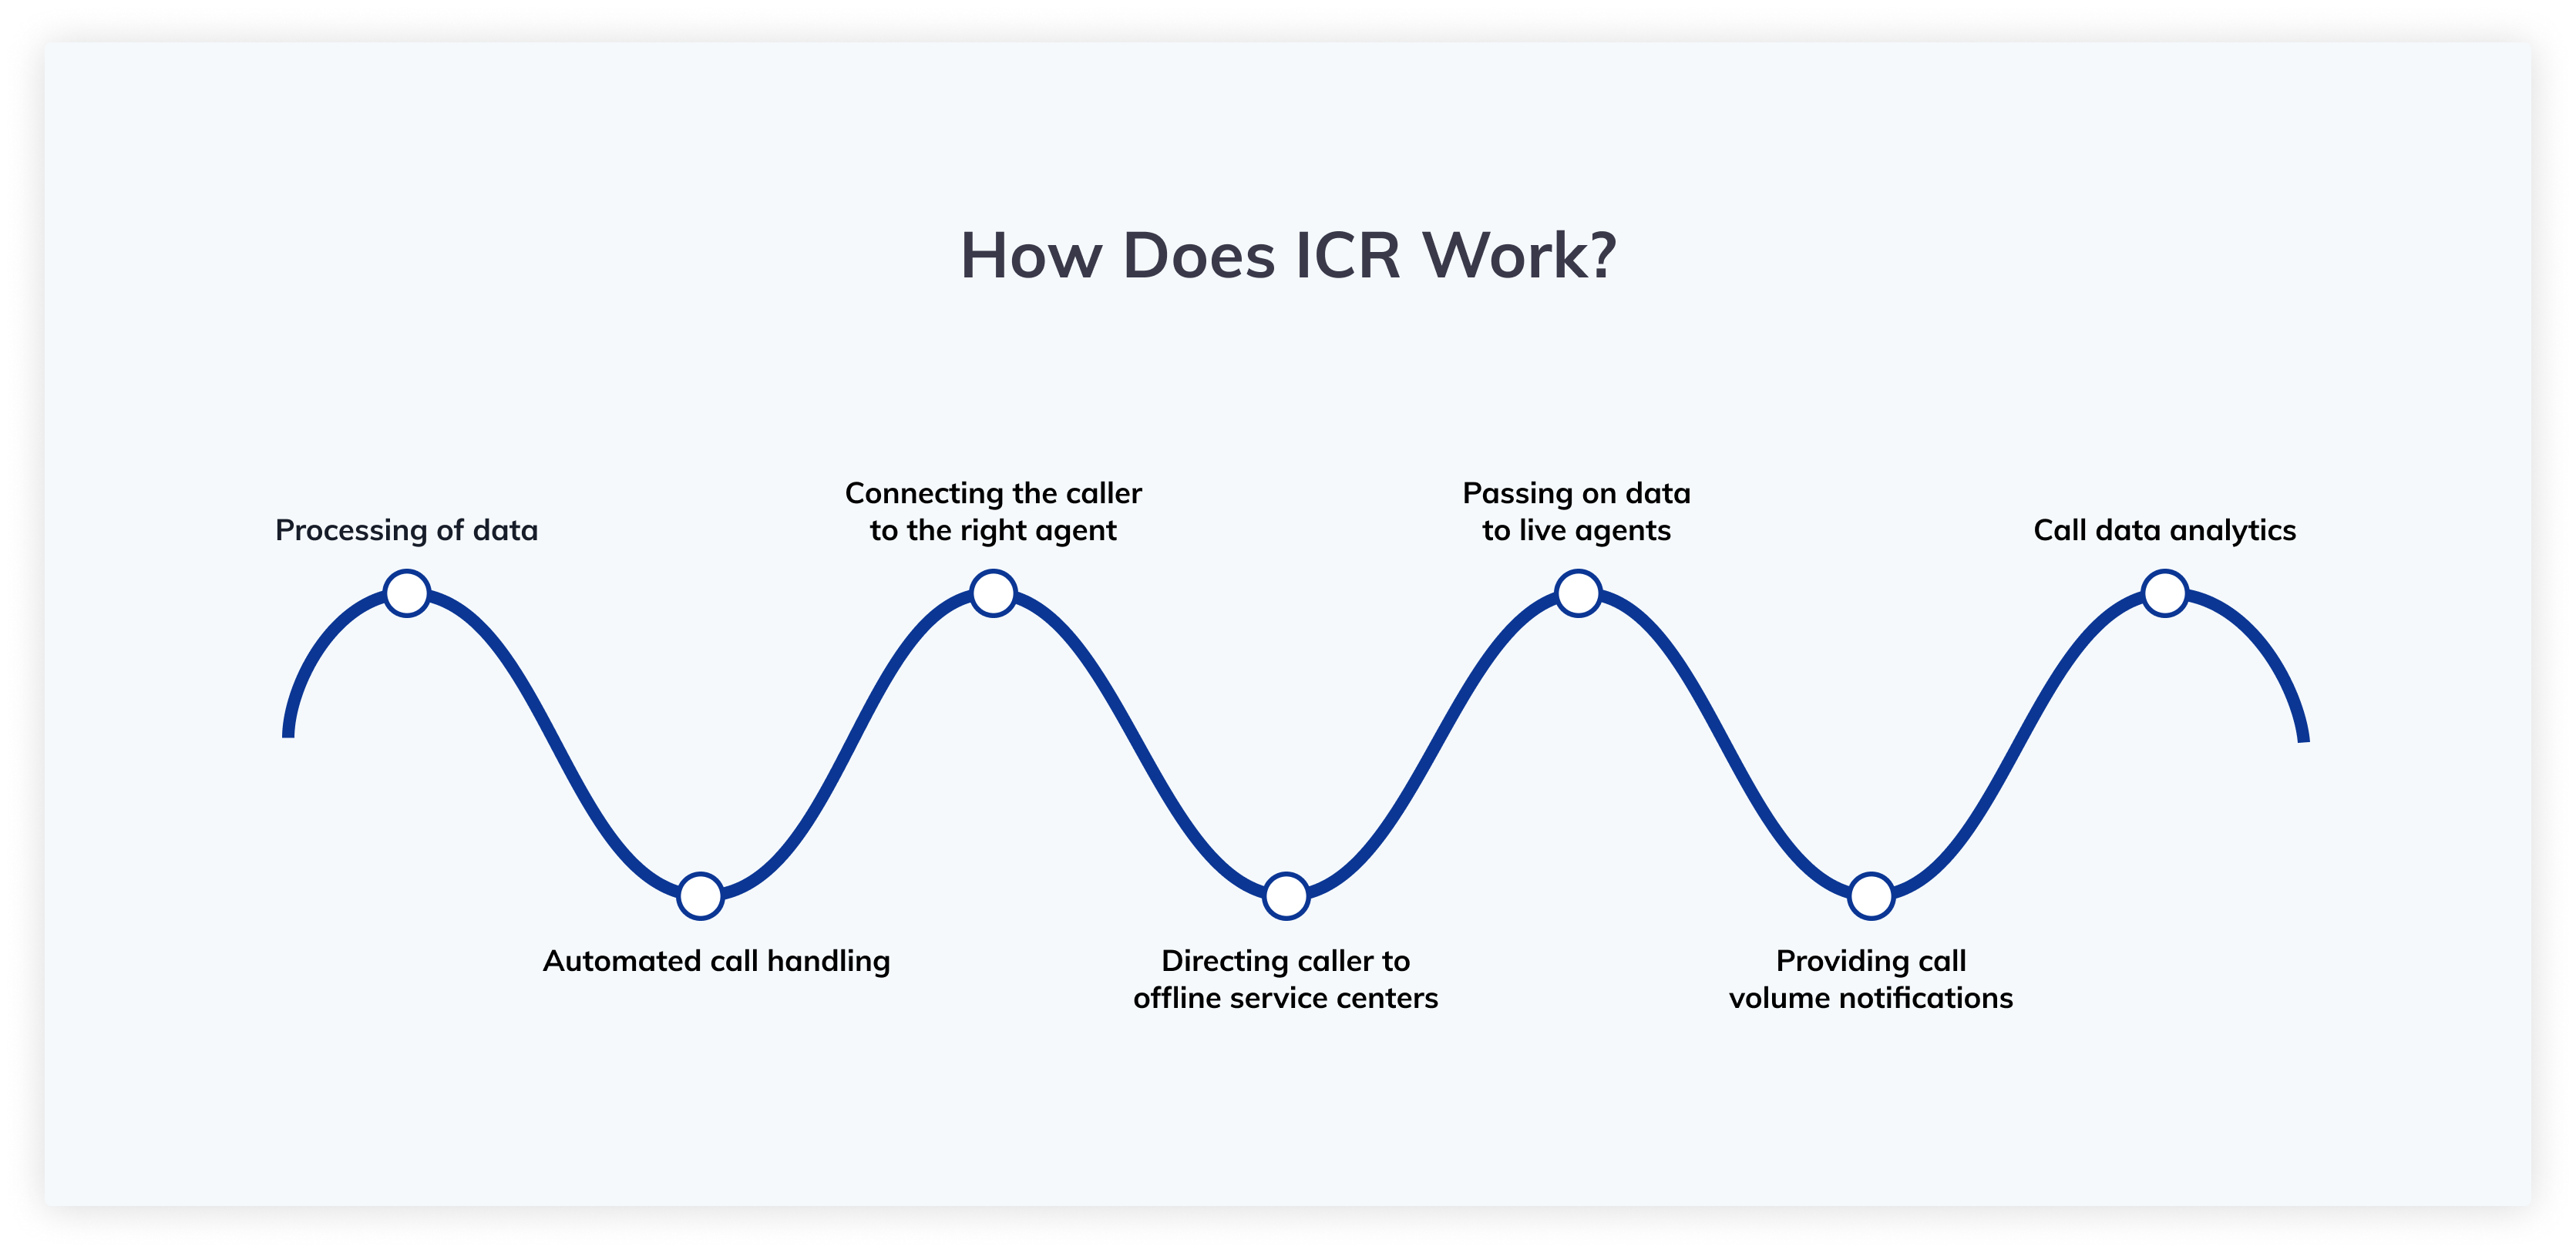 How Does ICR Work